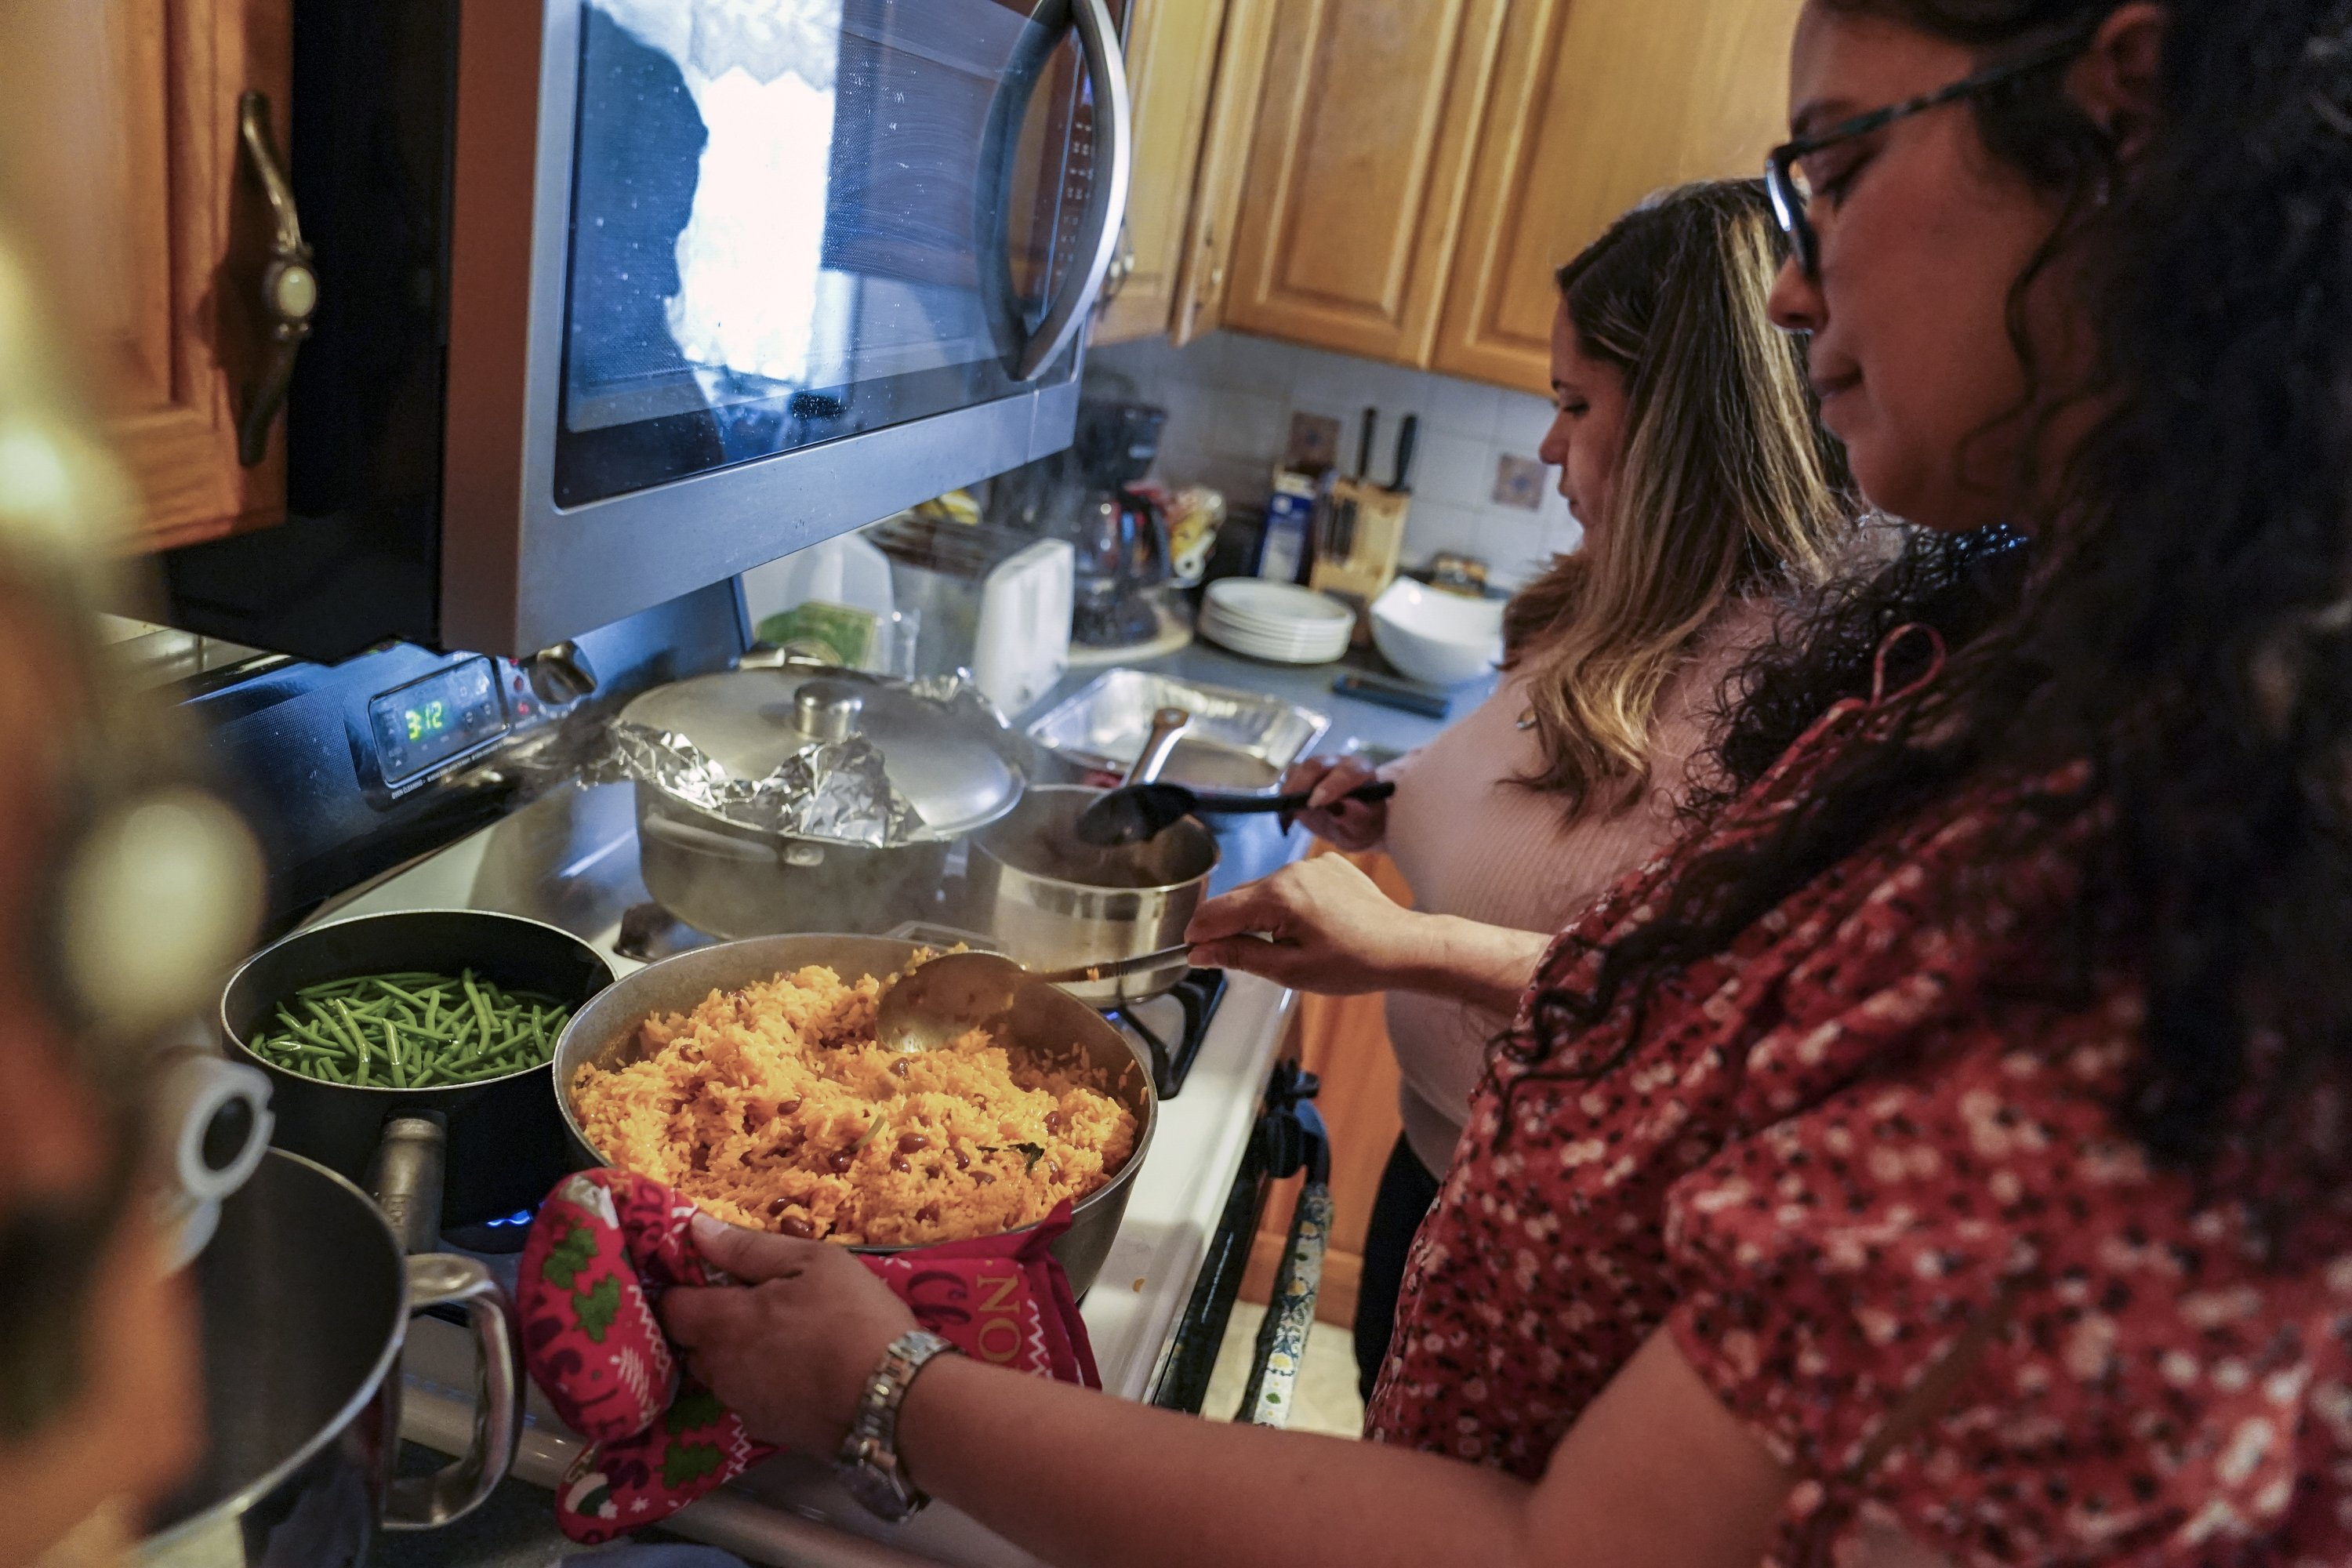 A woman cooks rice and beans by her mother's recipe as she and her sister prepare Thanksgiving dinner, Nov. 26, 2020, in Deer Park, N.Y. (AP Photo)